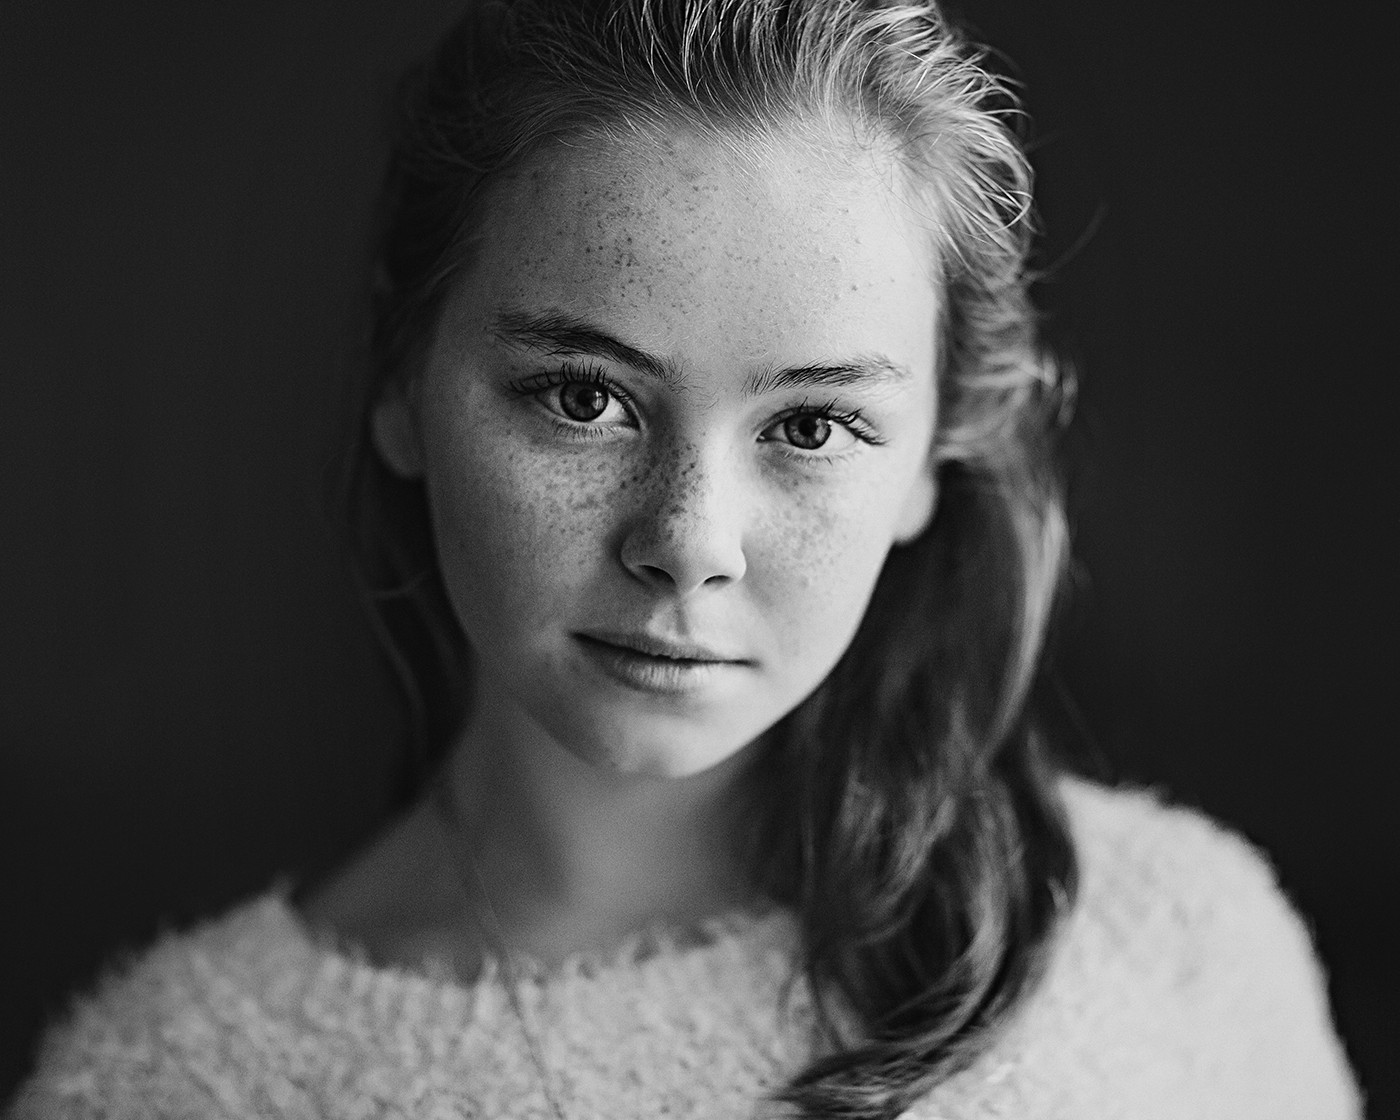 Freckles by Willie Kers